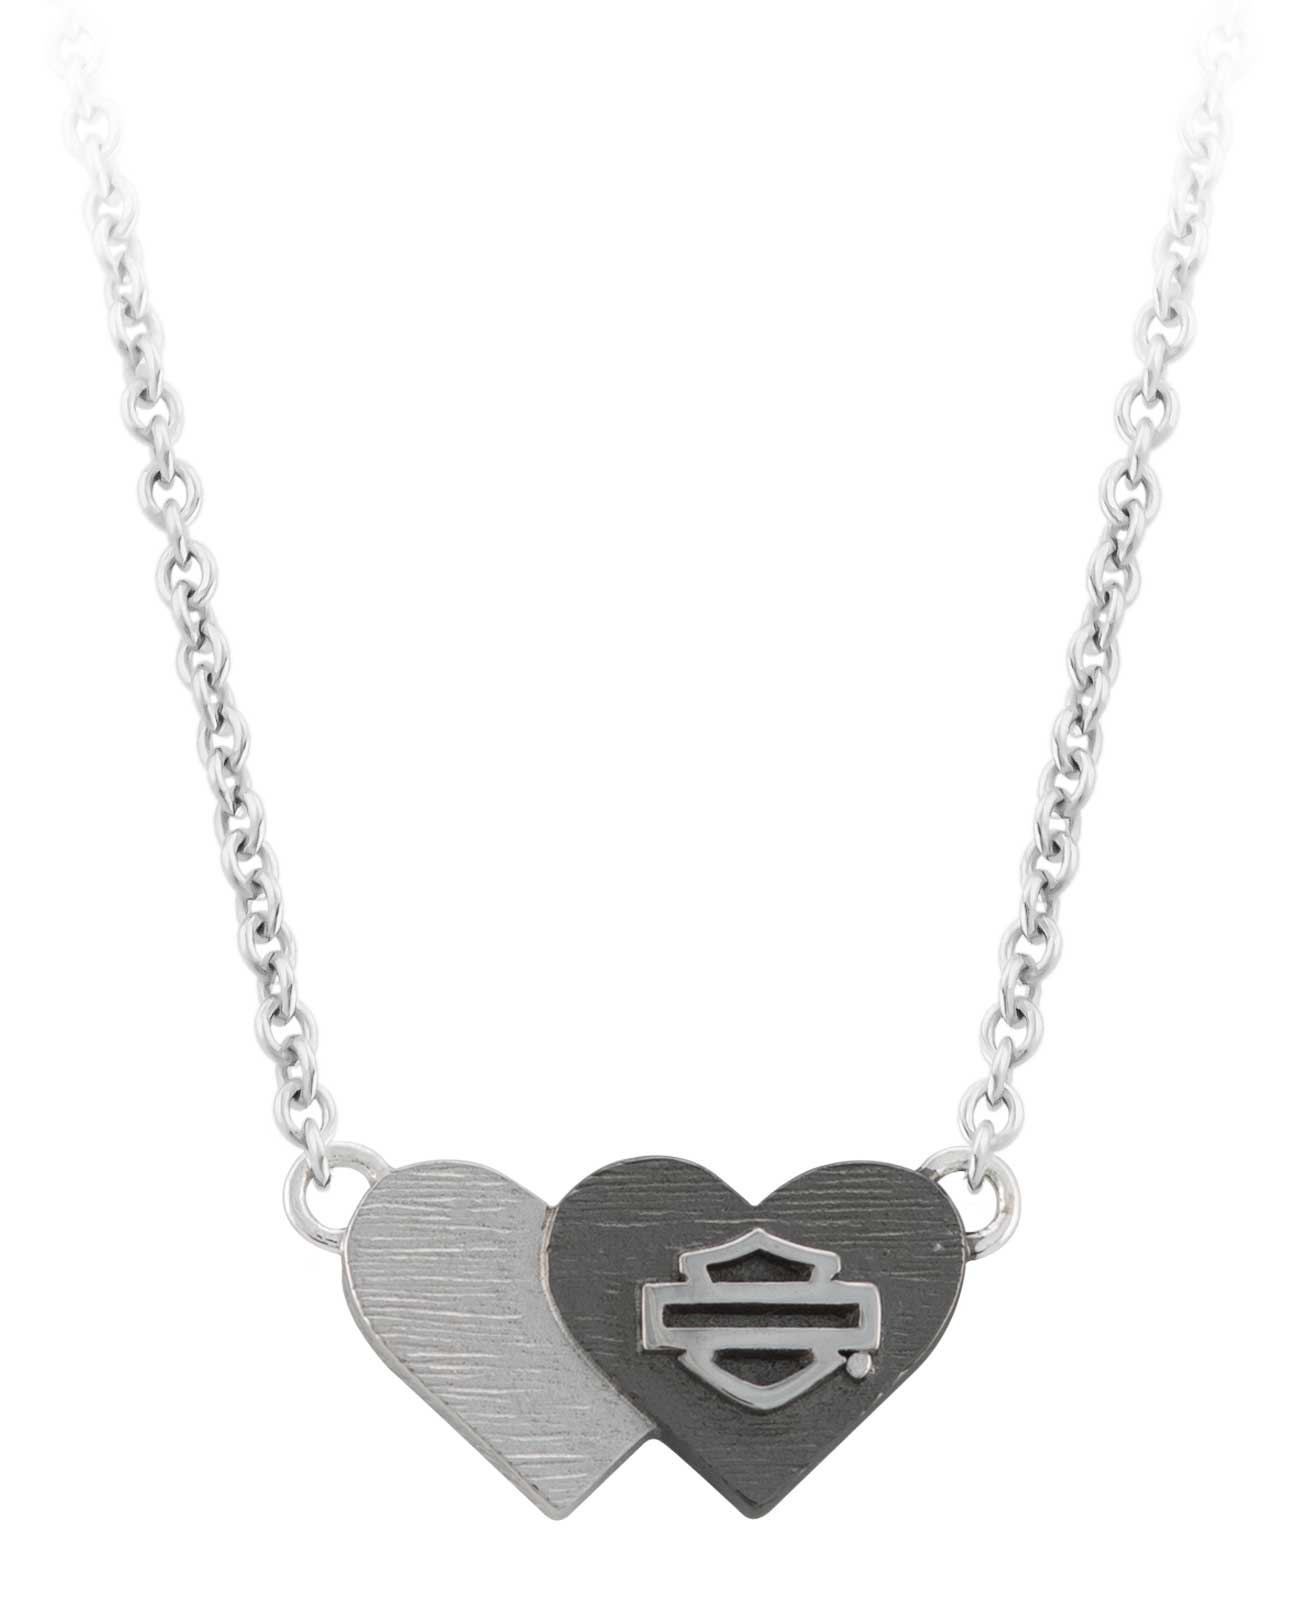 Rhinestone Hearts Lobster Clasp Closure 26 Inches in Length Sterling Silver Black and Silver Double Heart Pendant Necklace